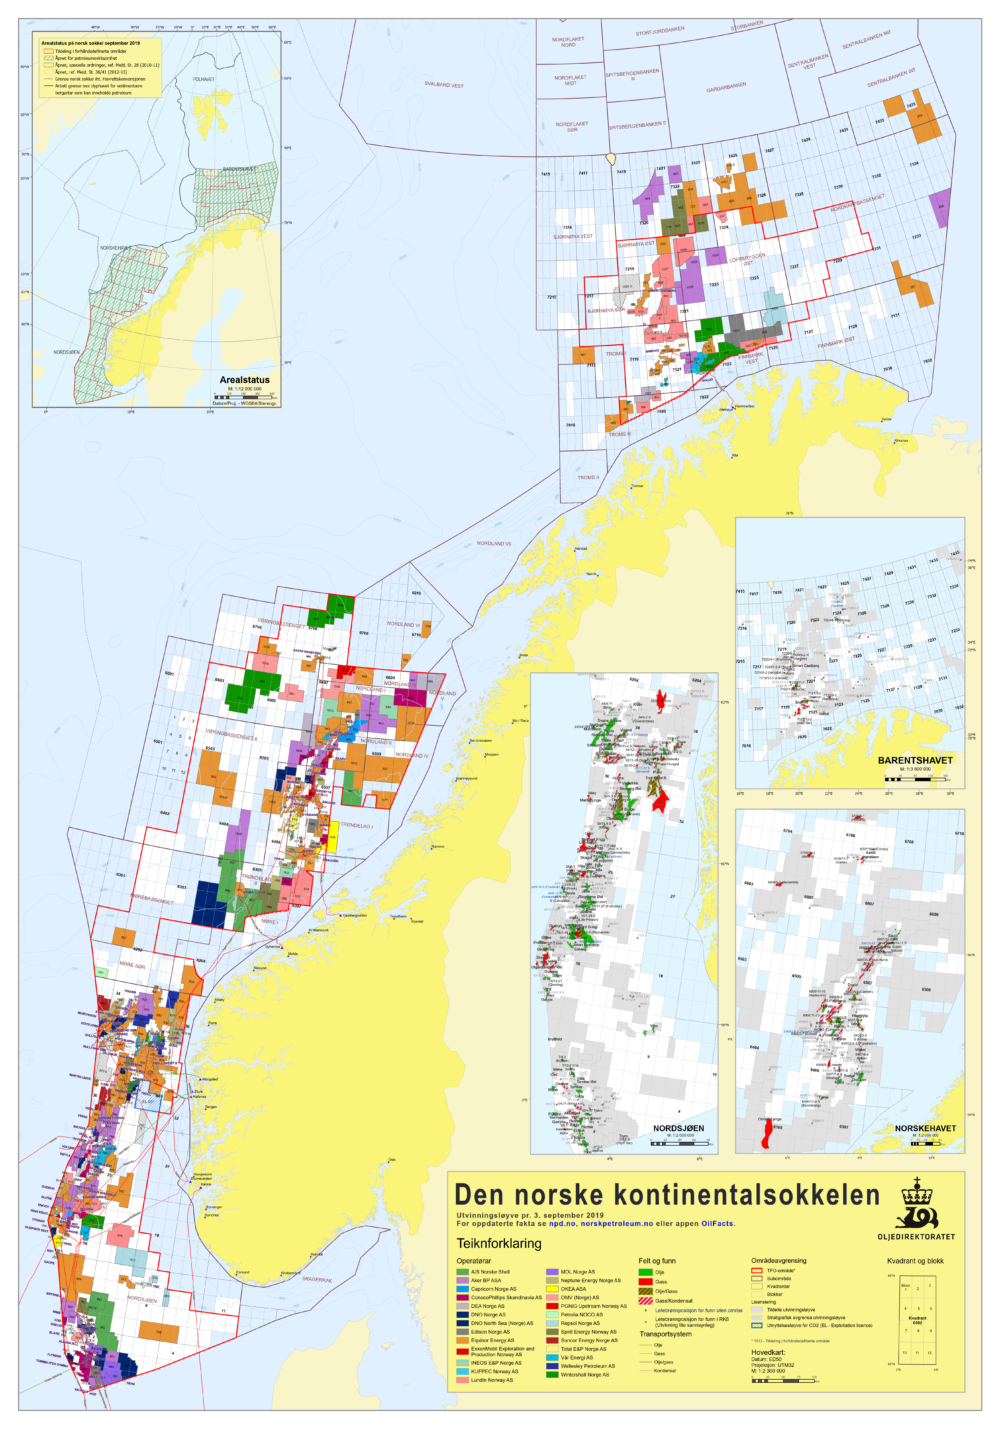 Kilde / Source: Oljedirektoratet / Norwegian Petroleum Directorate